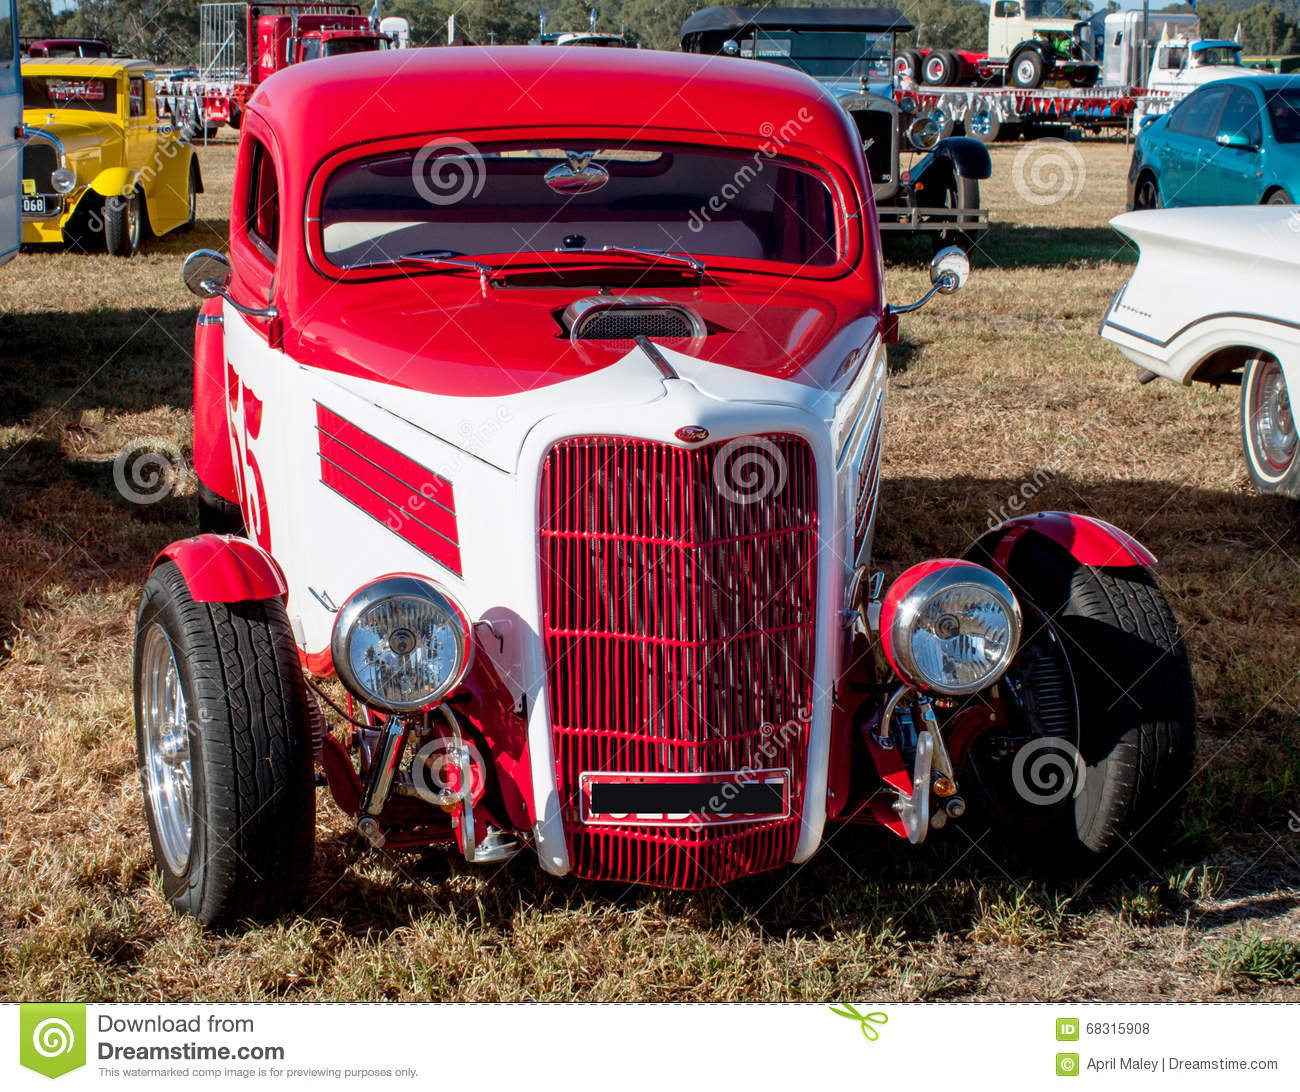 Funky Vintage Cars For Sale Nsw Mold - Classic Cars Ideas - boiq.info